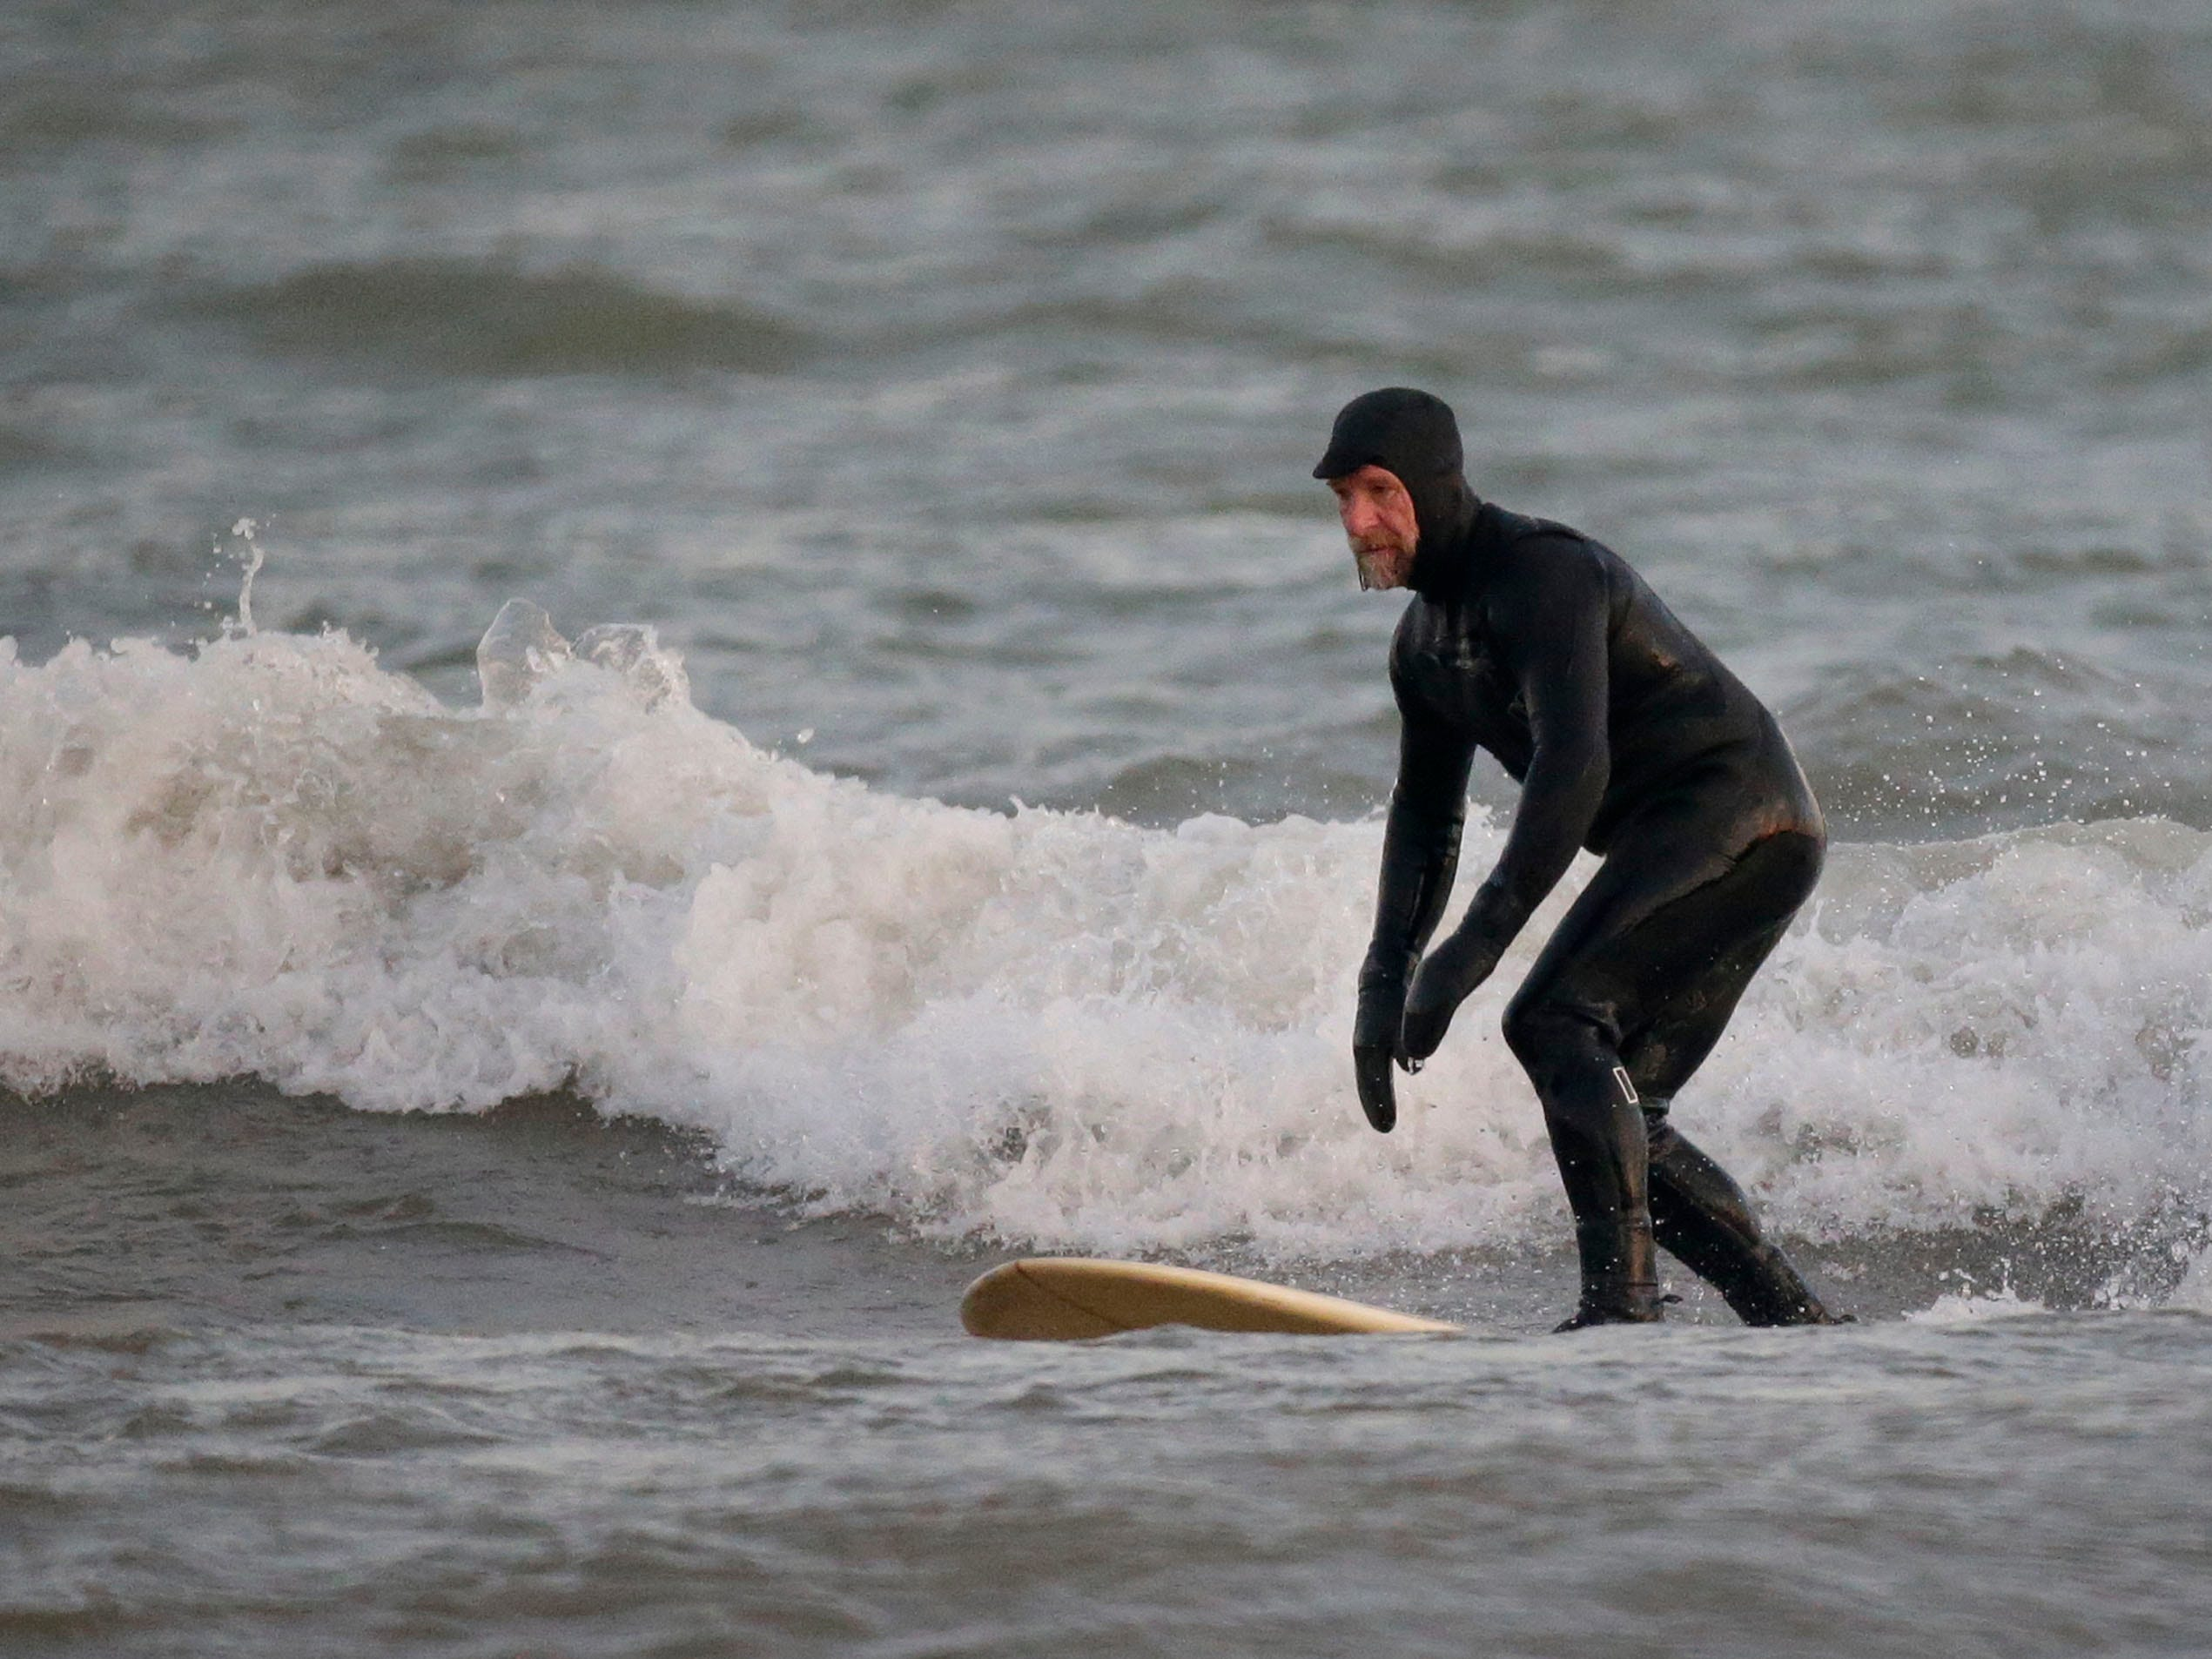 Brian David surfs at the lakefront, Tuesday, December 18, 2108, in Sheboygan, Wis.